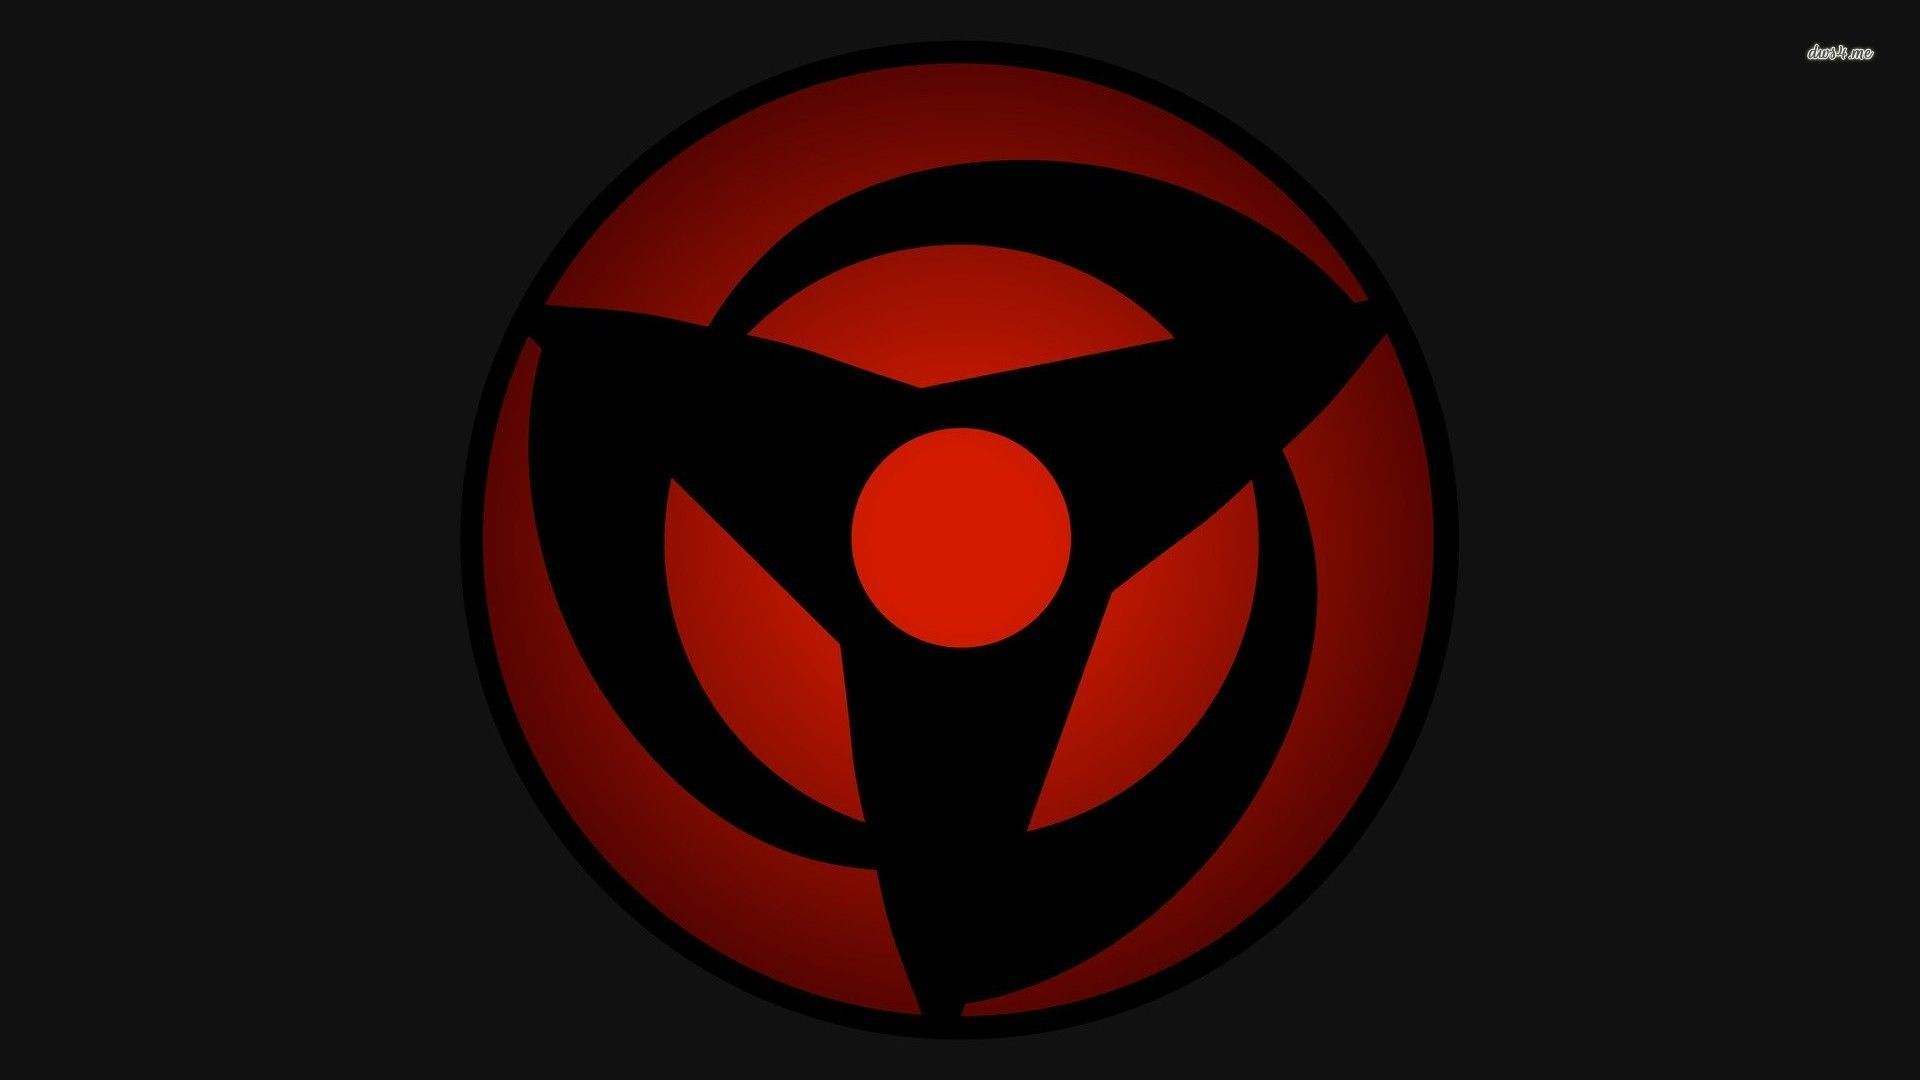 Great Wallpaper Logo Naruto - 8d375156615192e1f03958a8d4f2ee00  You Should Have_29330.jpg